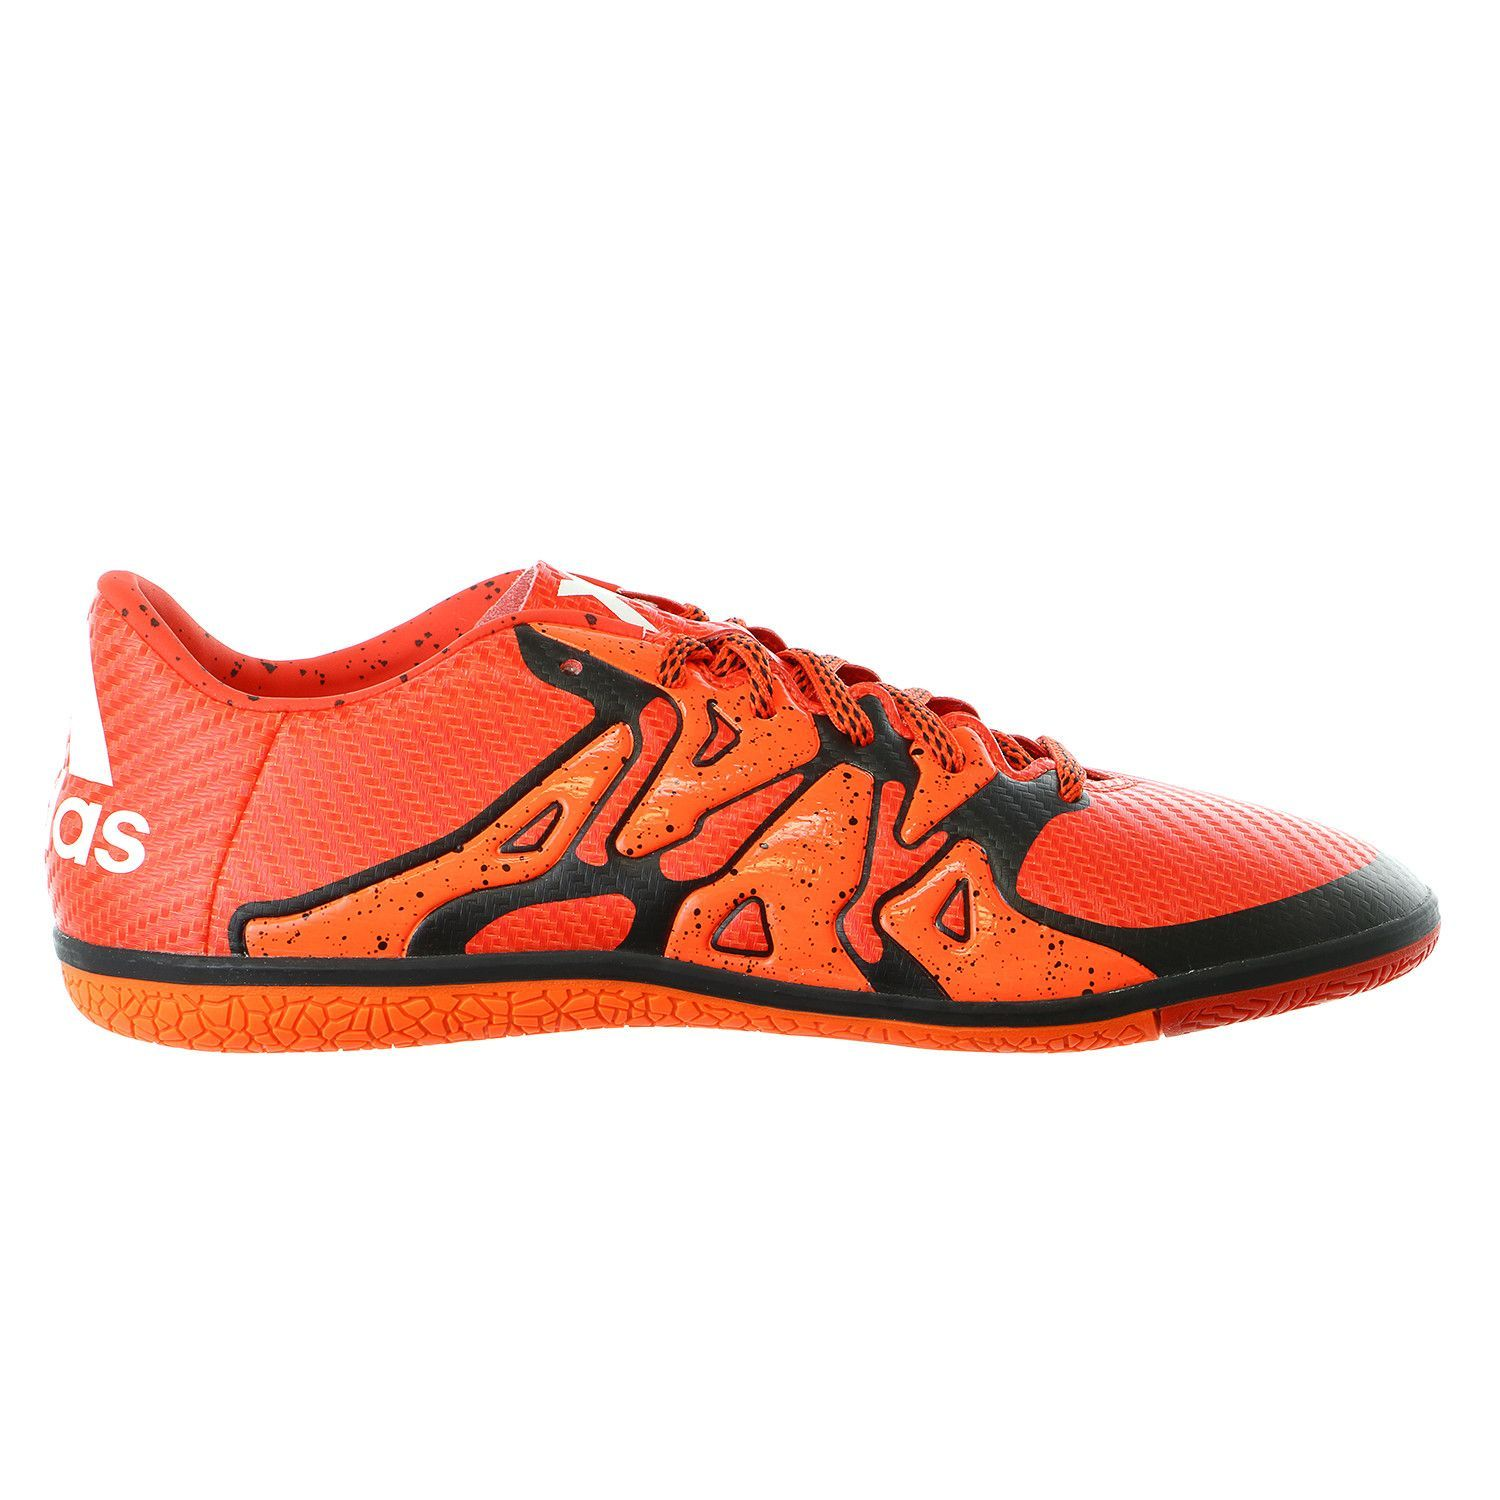 e9240331a Adidas X 15.3 IN Indoor Soccer Sneaker Shoe - Mens